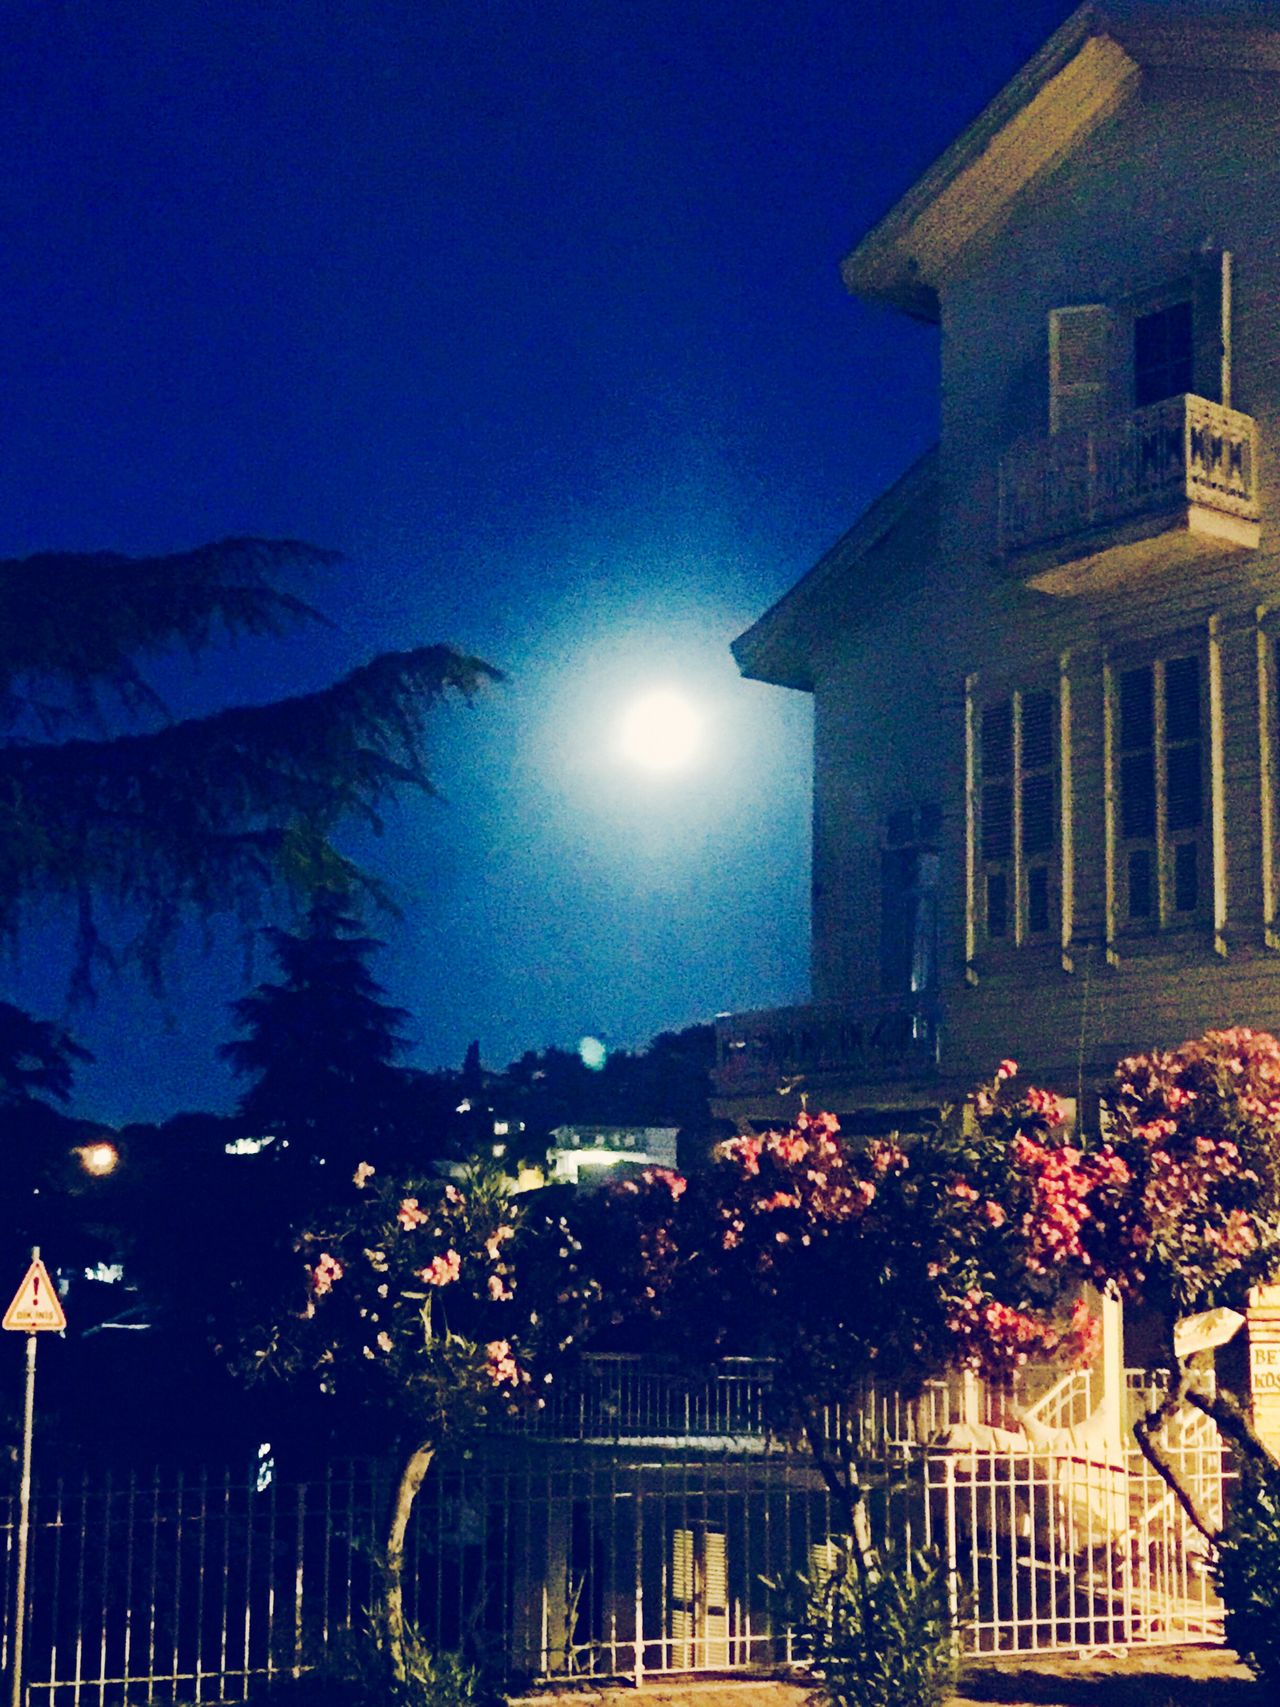 Full Moon Old Building  Old House Redflowers Trees Princeislands Mobile Photography Mobilephotography IPhoneography Island Island Life